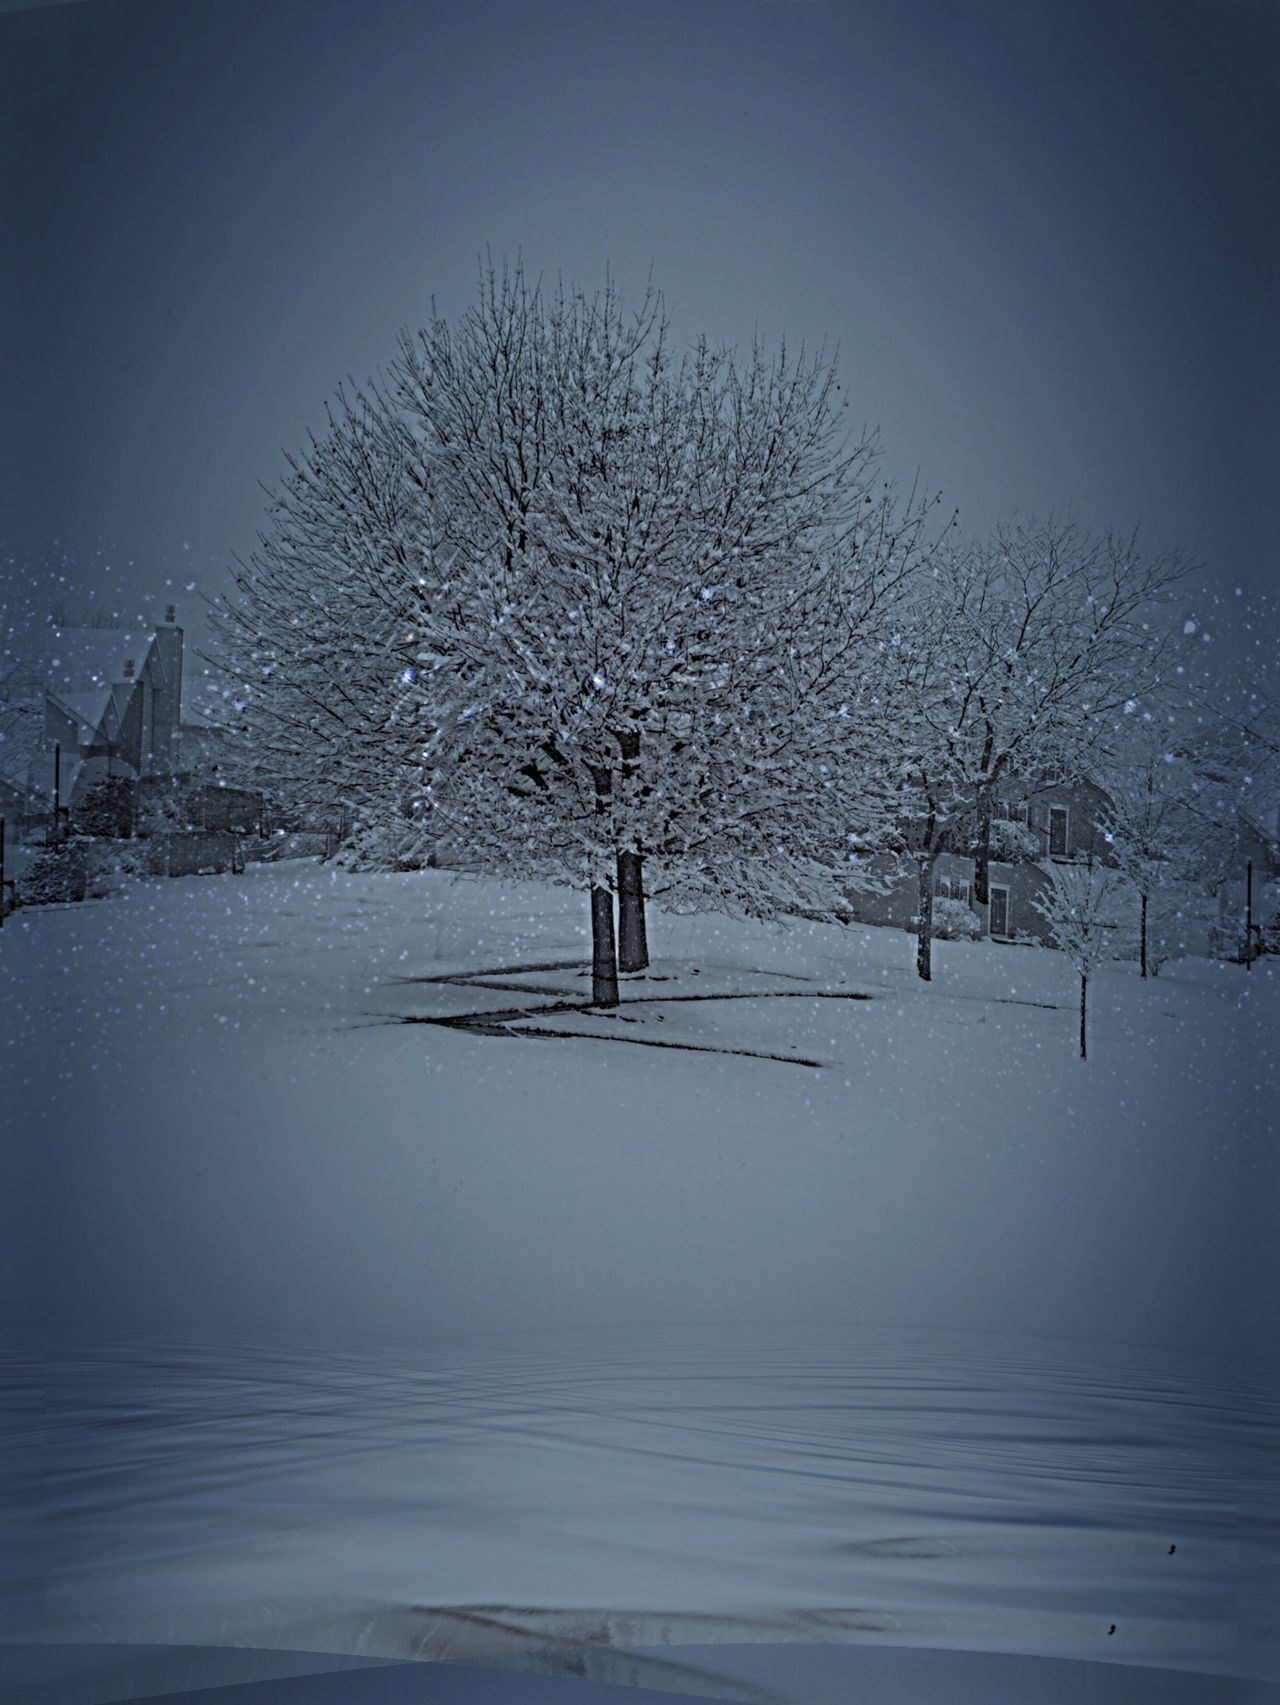 Winter Wonderland Oswego, IL United States Winter Trees Winter Sky Snowing Again Snowing ❄ Snow ❄ First Snowfall The Week On Eyem No People Day Beauty In Nature Outdoors Landscape Landscape_Collection Landscape_photography Nature Beauty In Nature Tranquility Majestic Beauty In Nature,